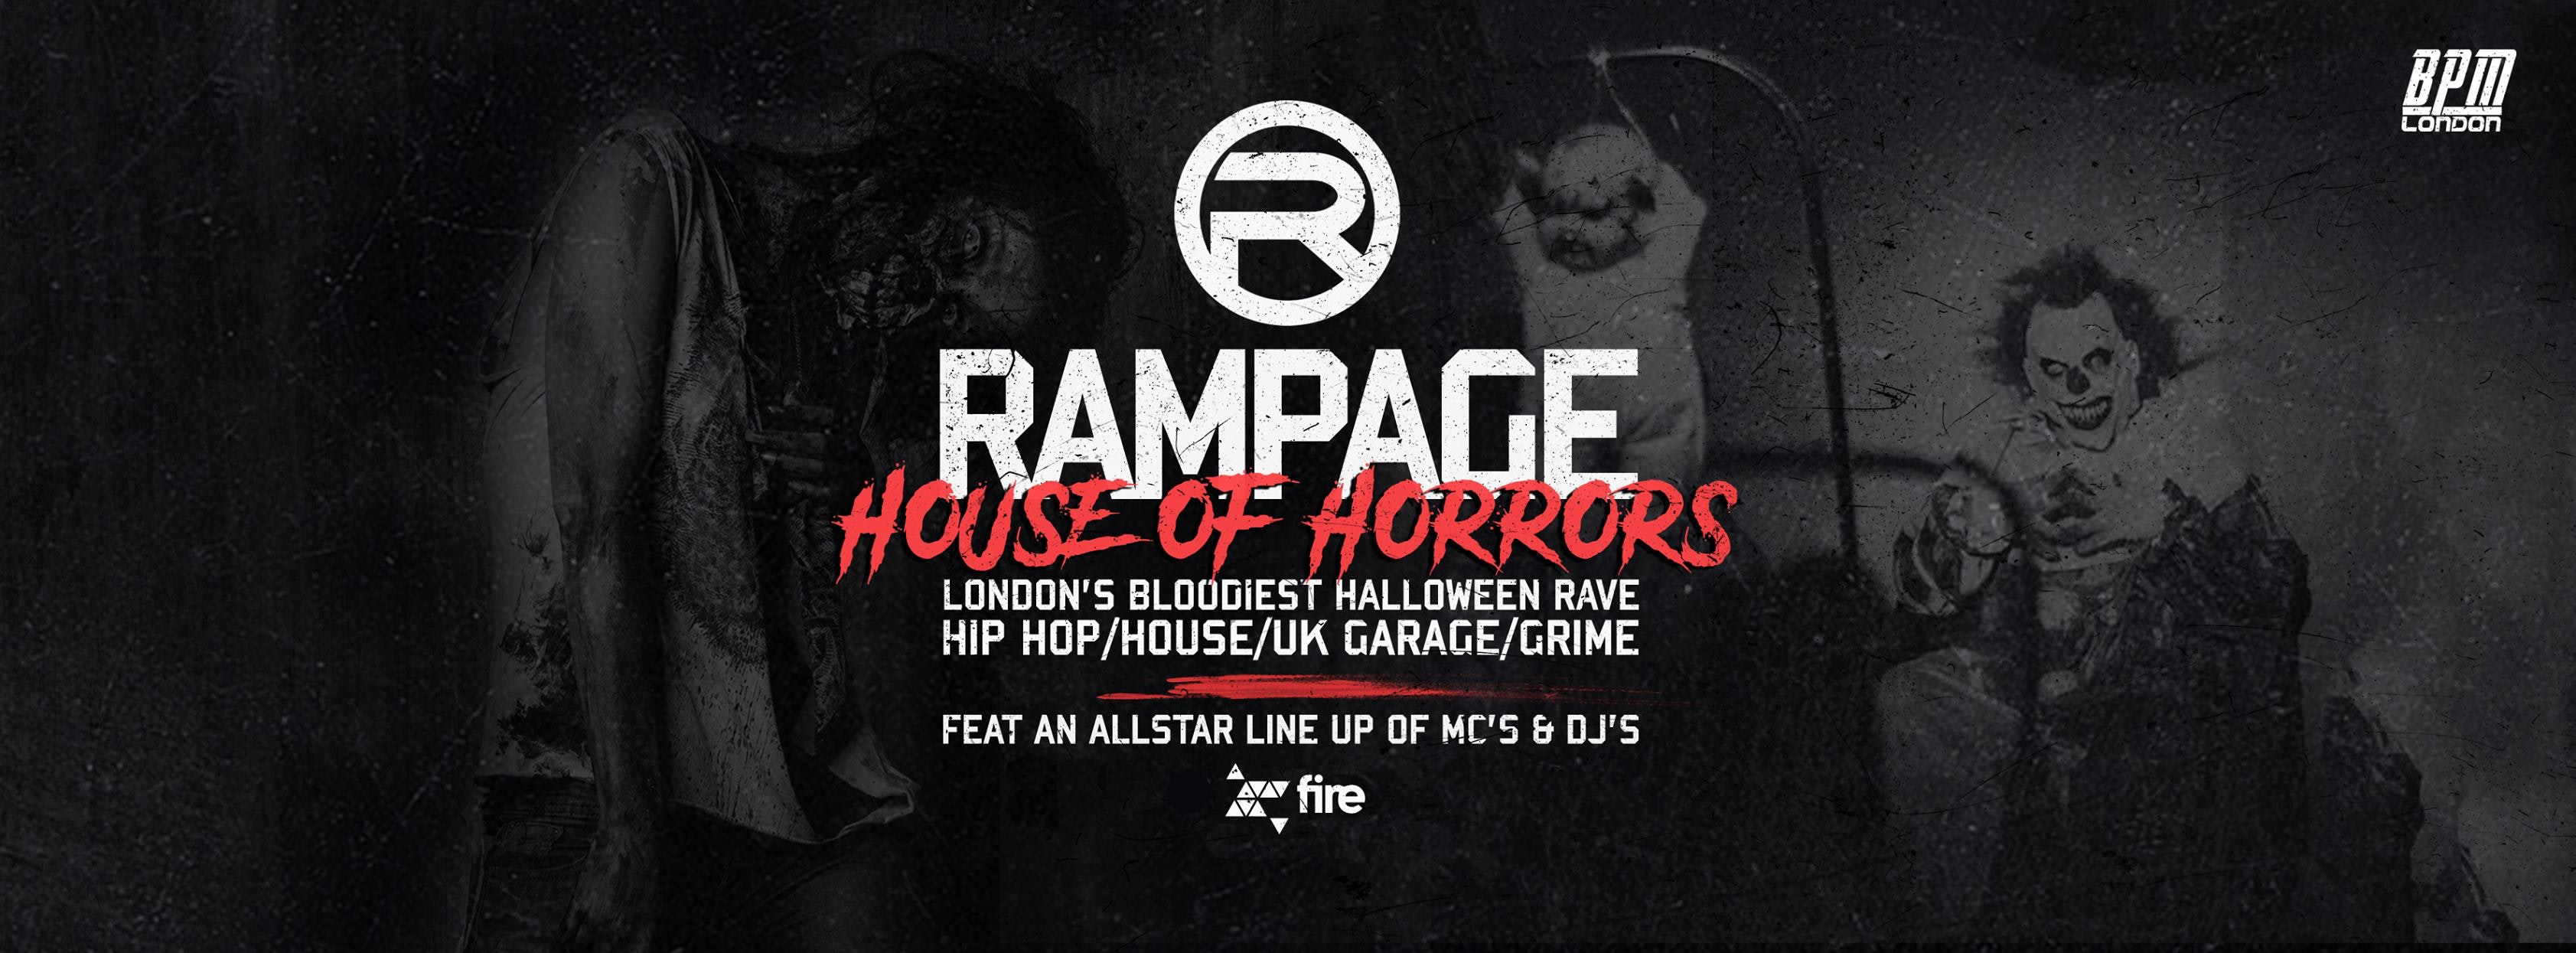 The Rampage Sound House Of Horrors Halloween Rave – ft Crazy Cousinz